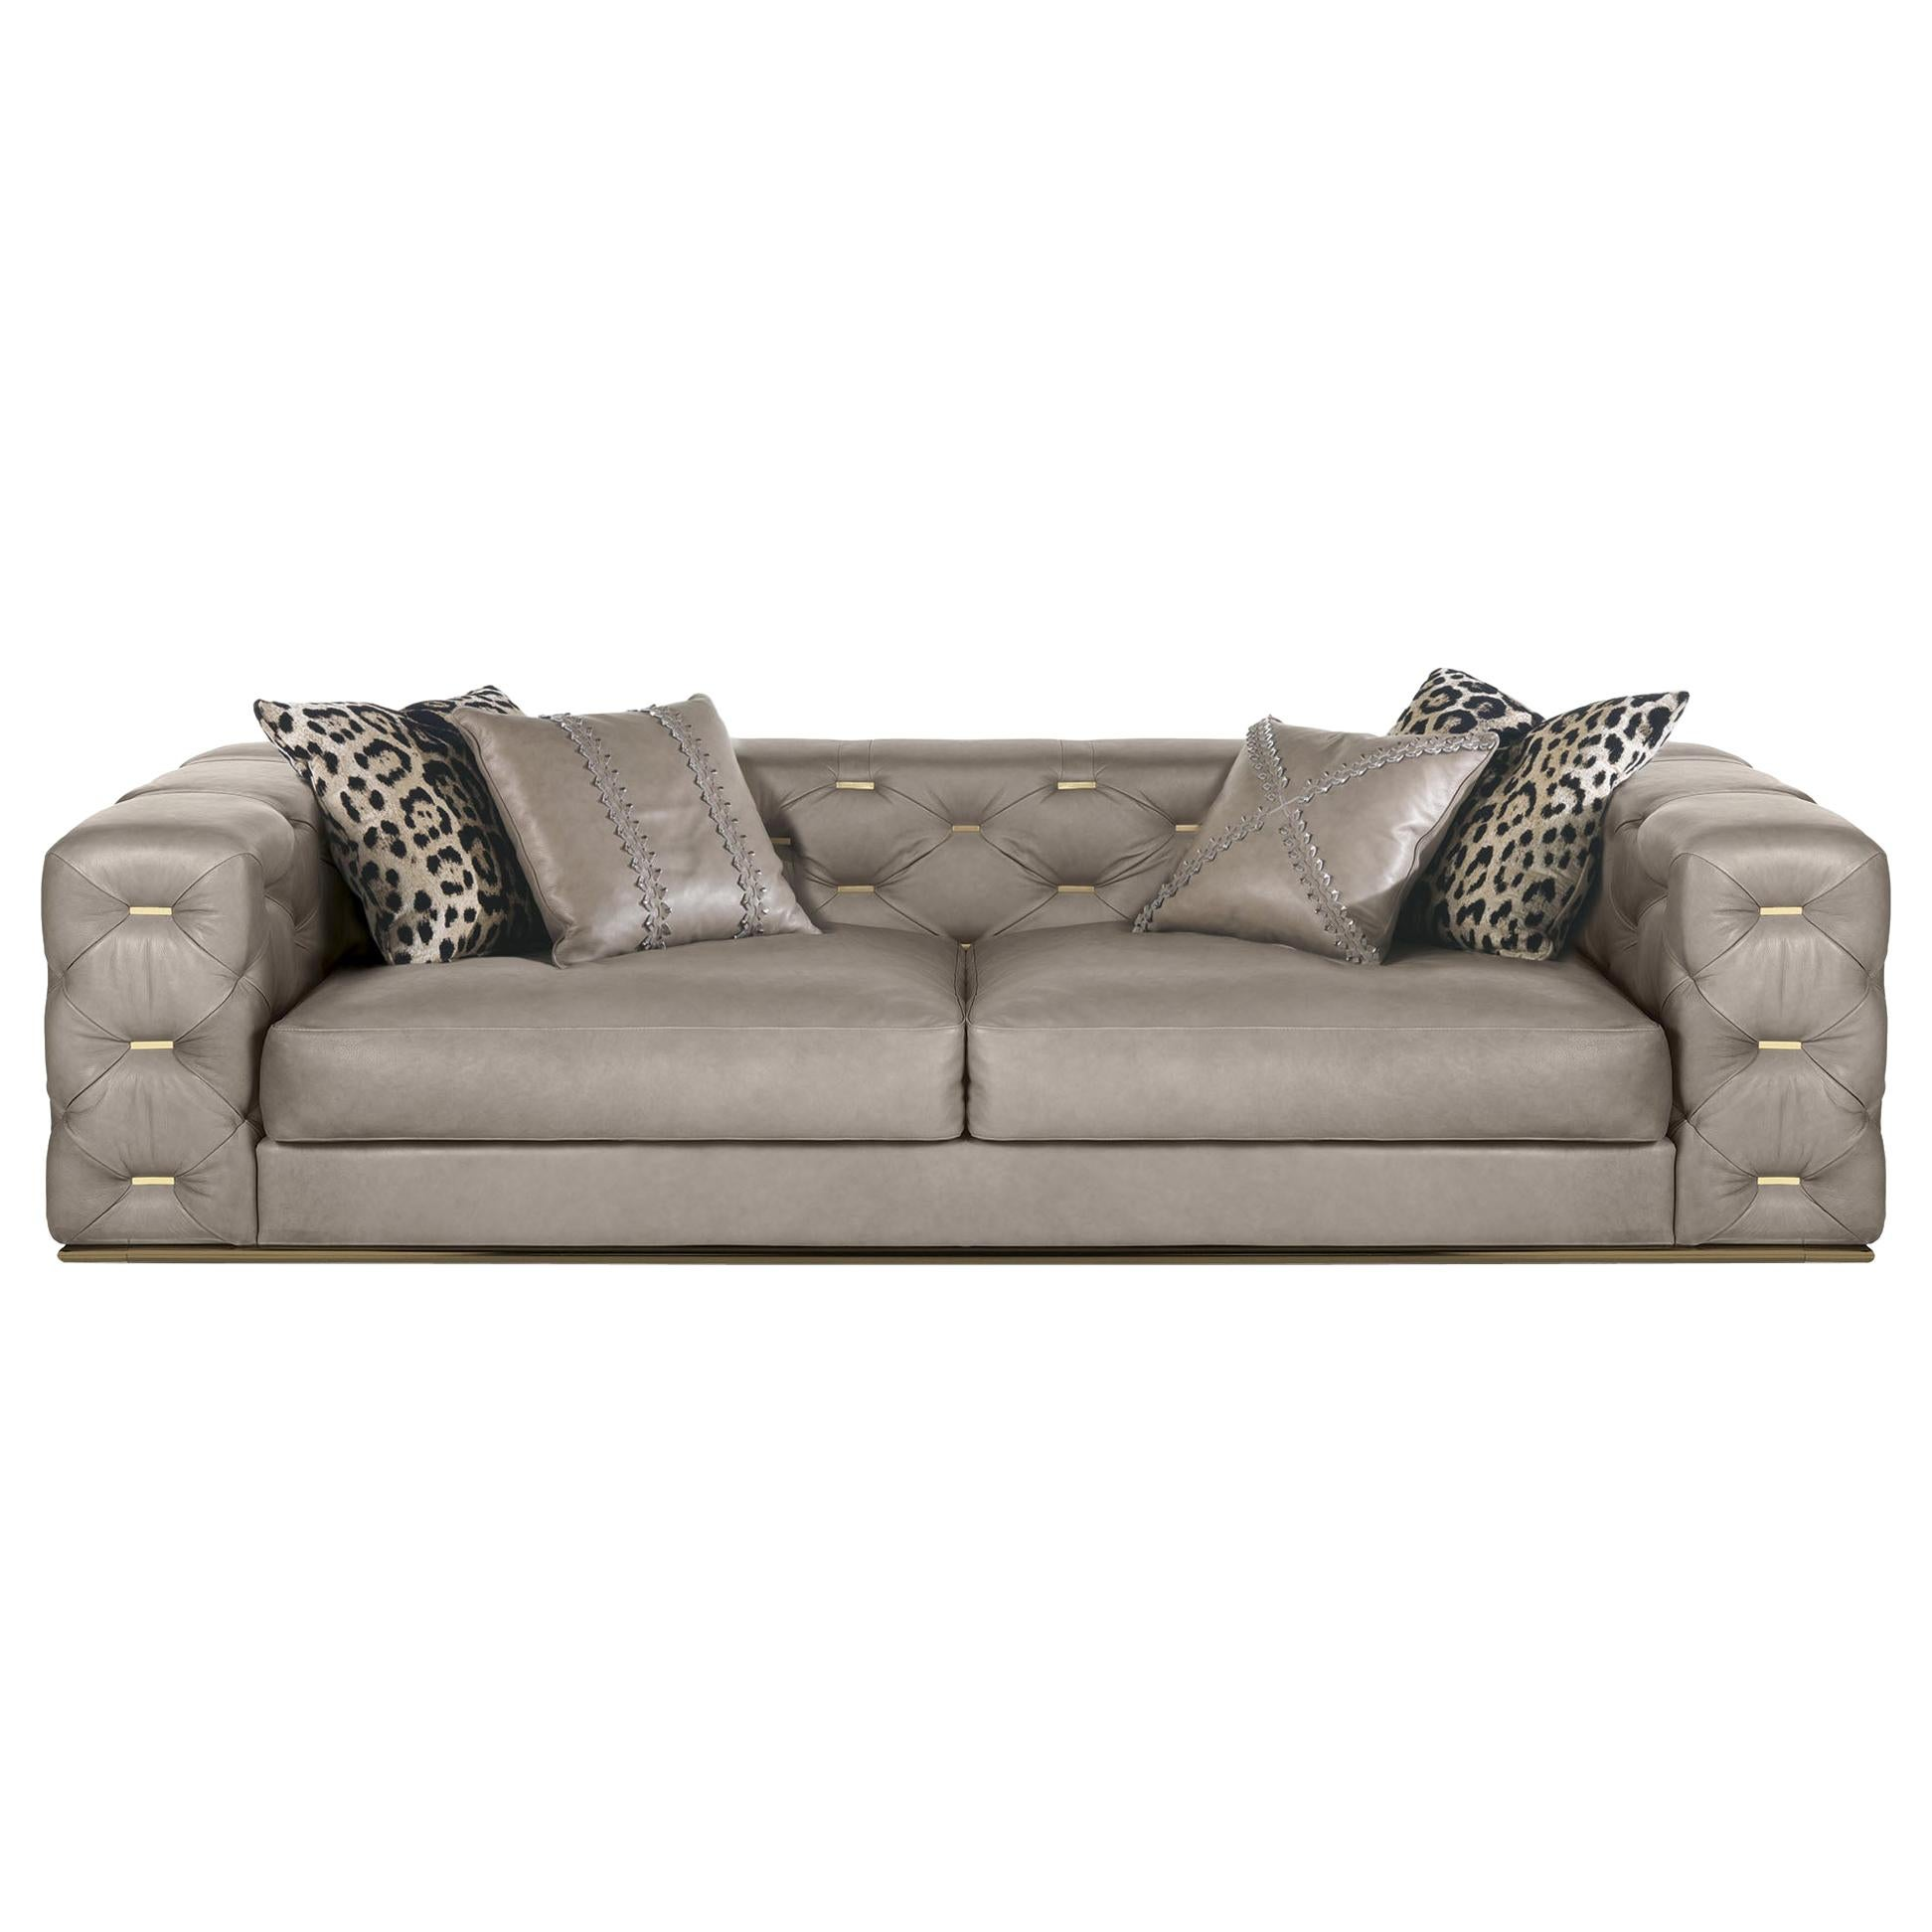 Turner 3-Seater Sofa in Leather by Roberto Cavalli Home Interiors